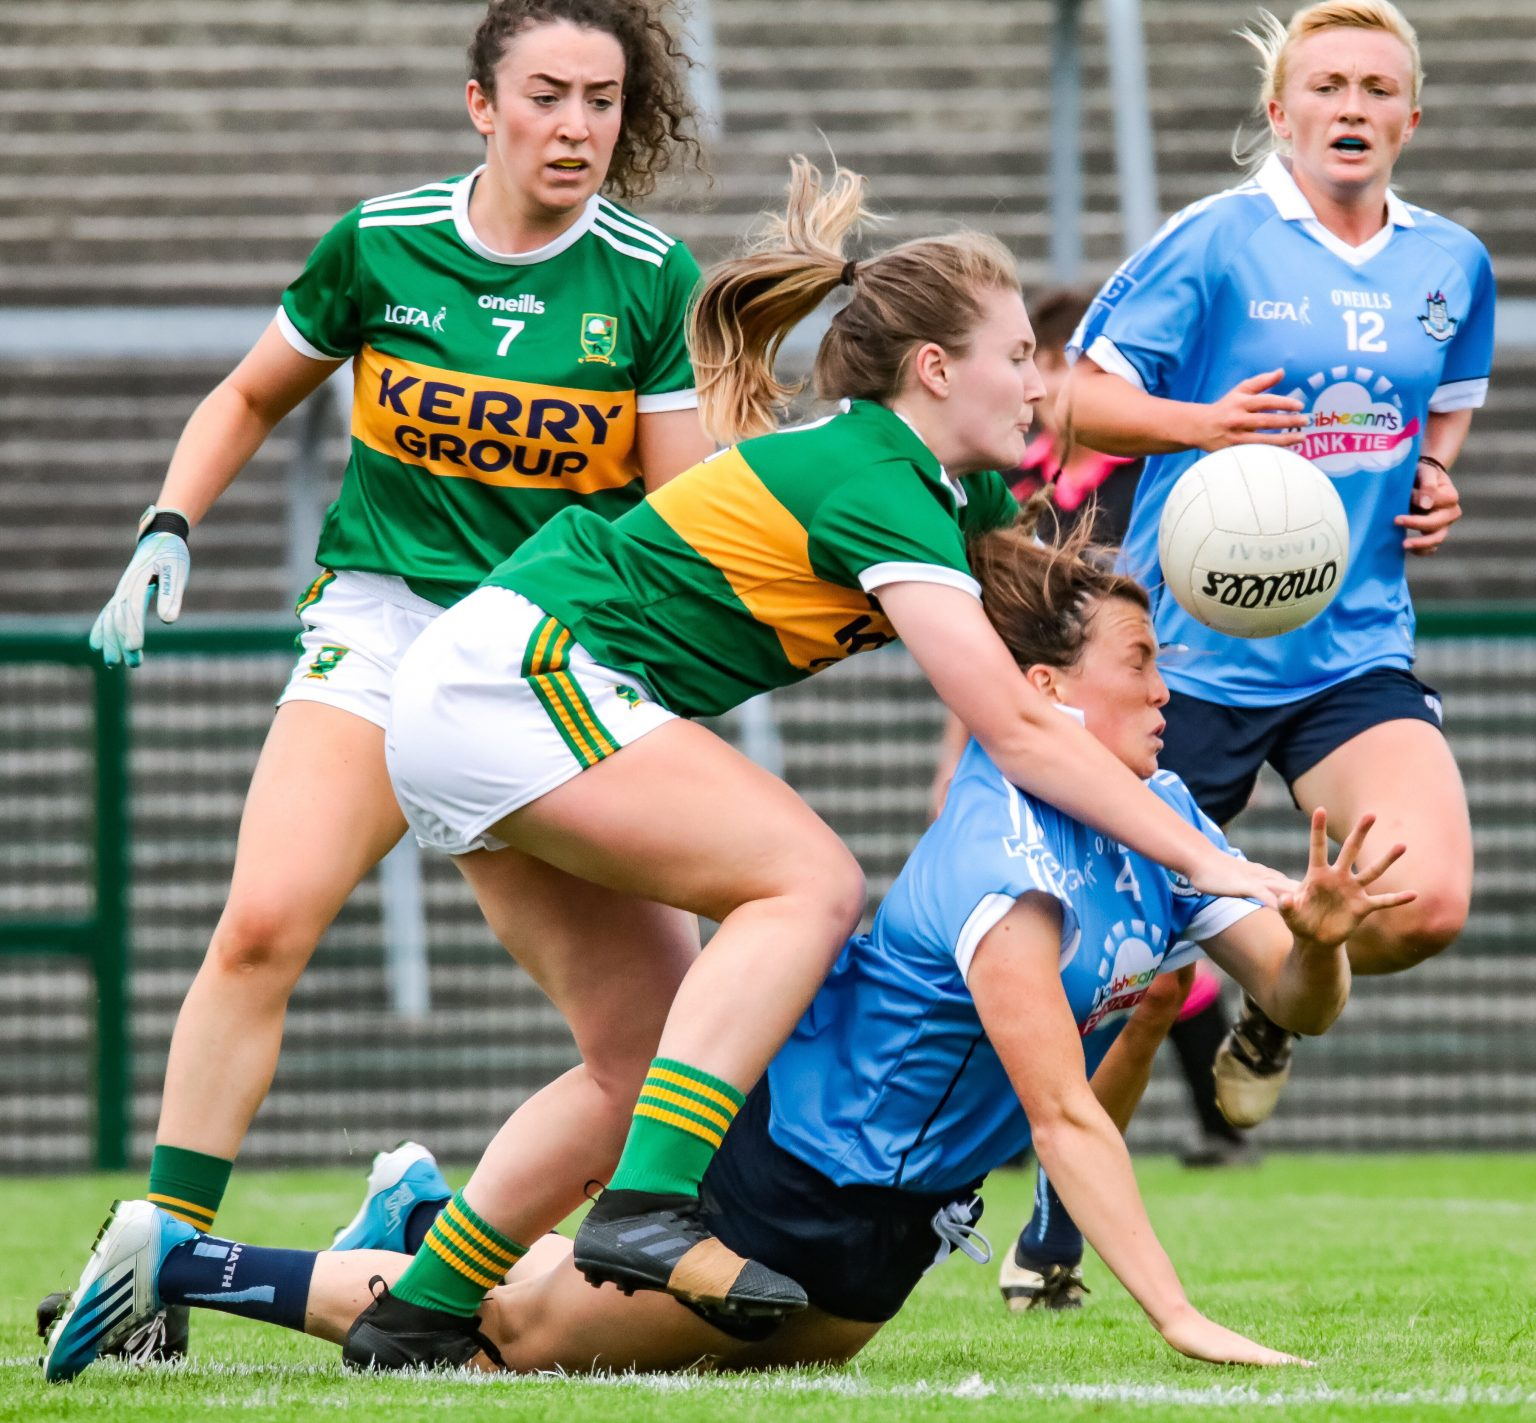 Dublin Ladies footballer in a sky blue jersey and navy shorts is fouled by a Kerry player in a green jersey and white shorts